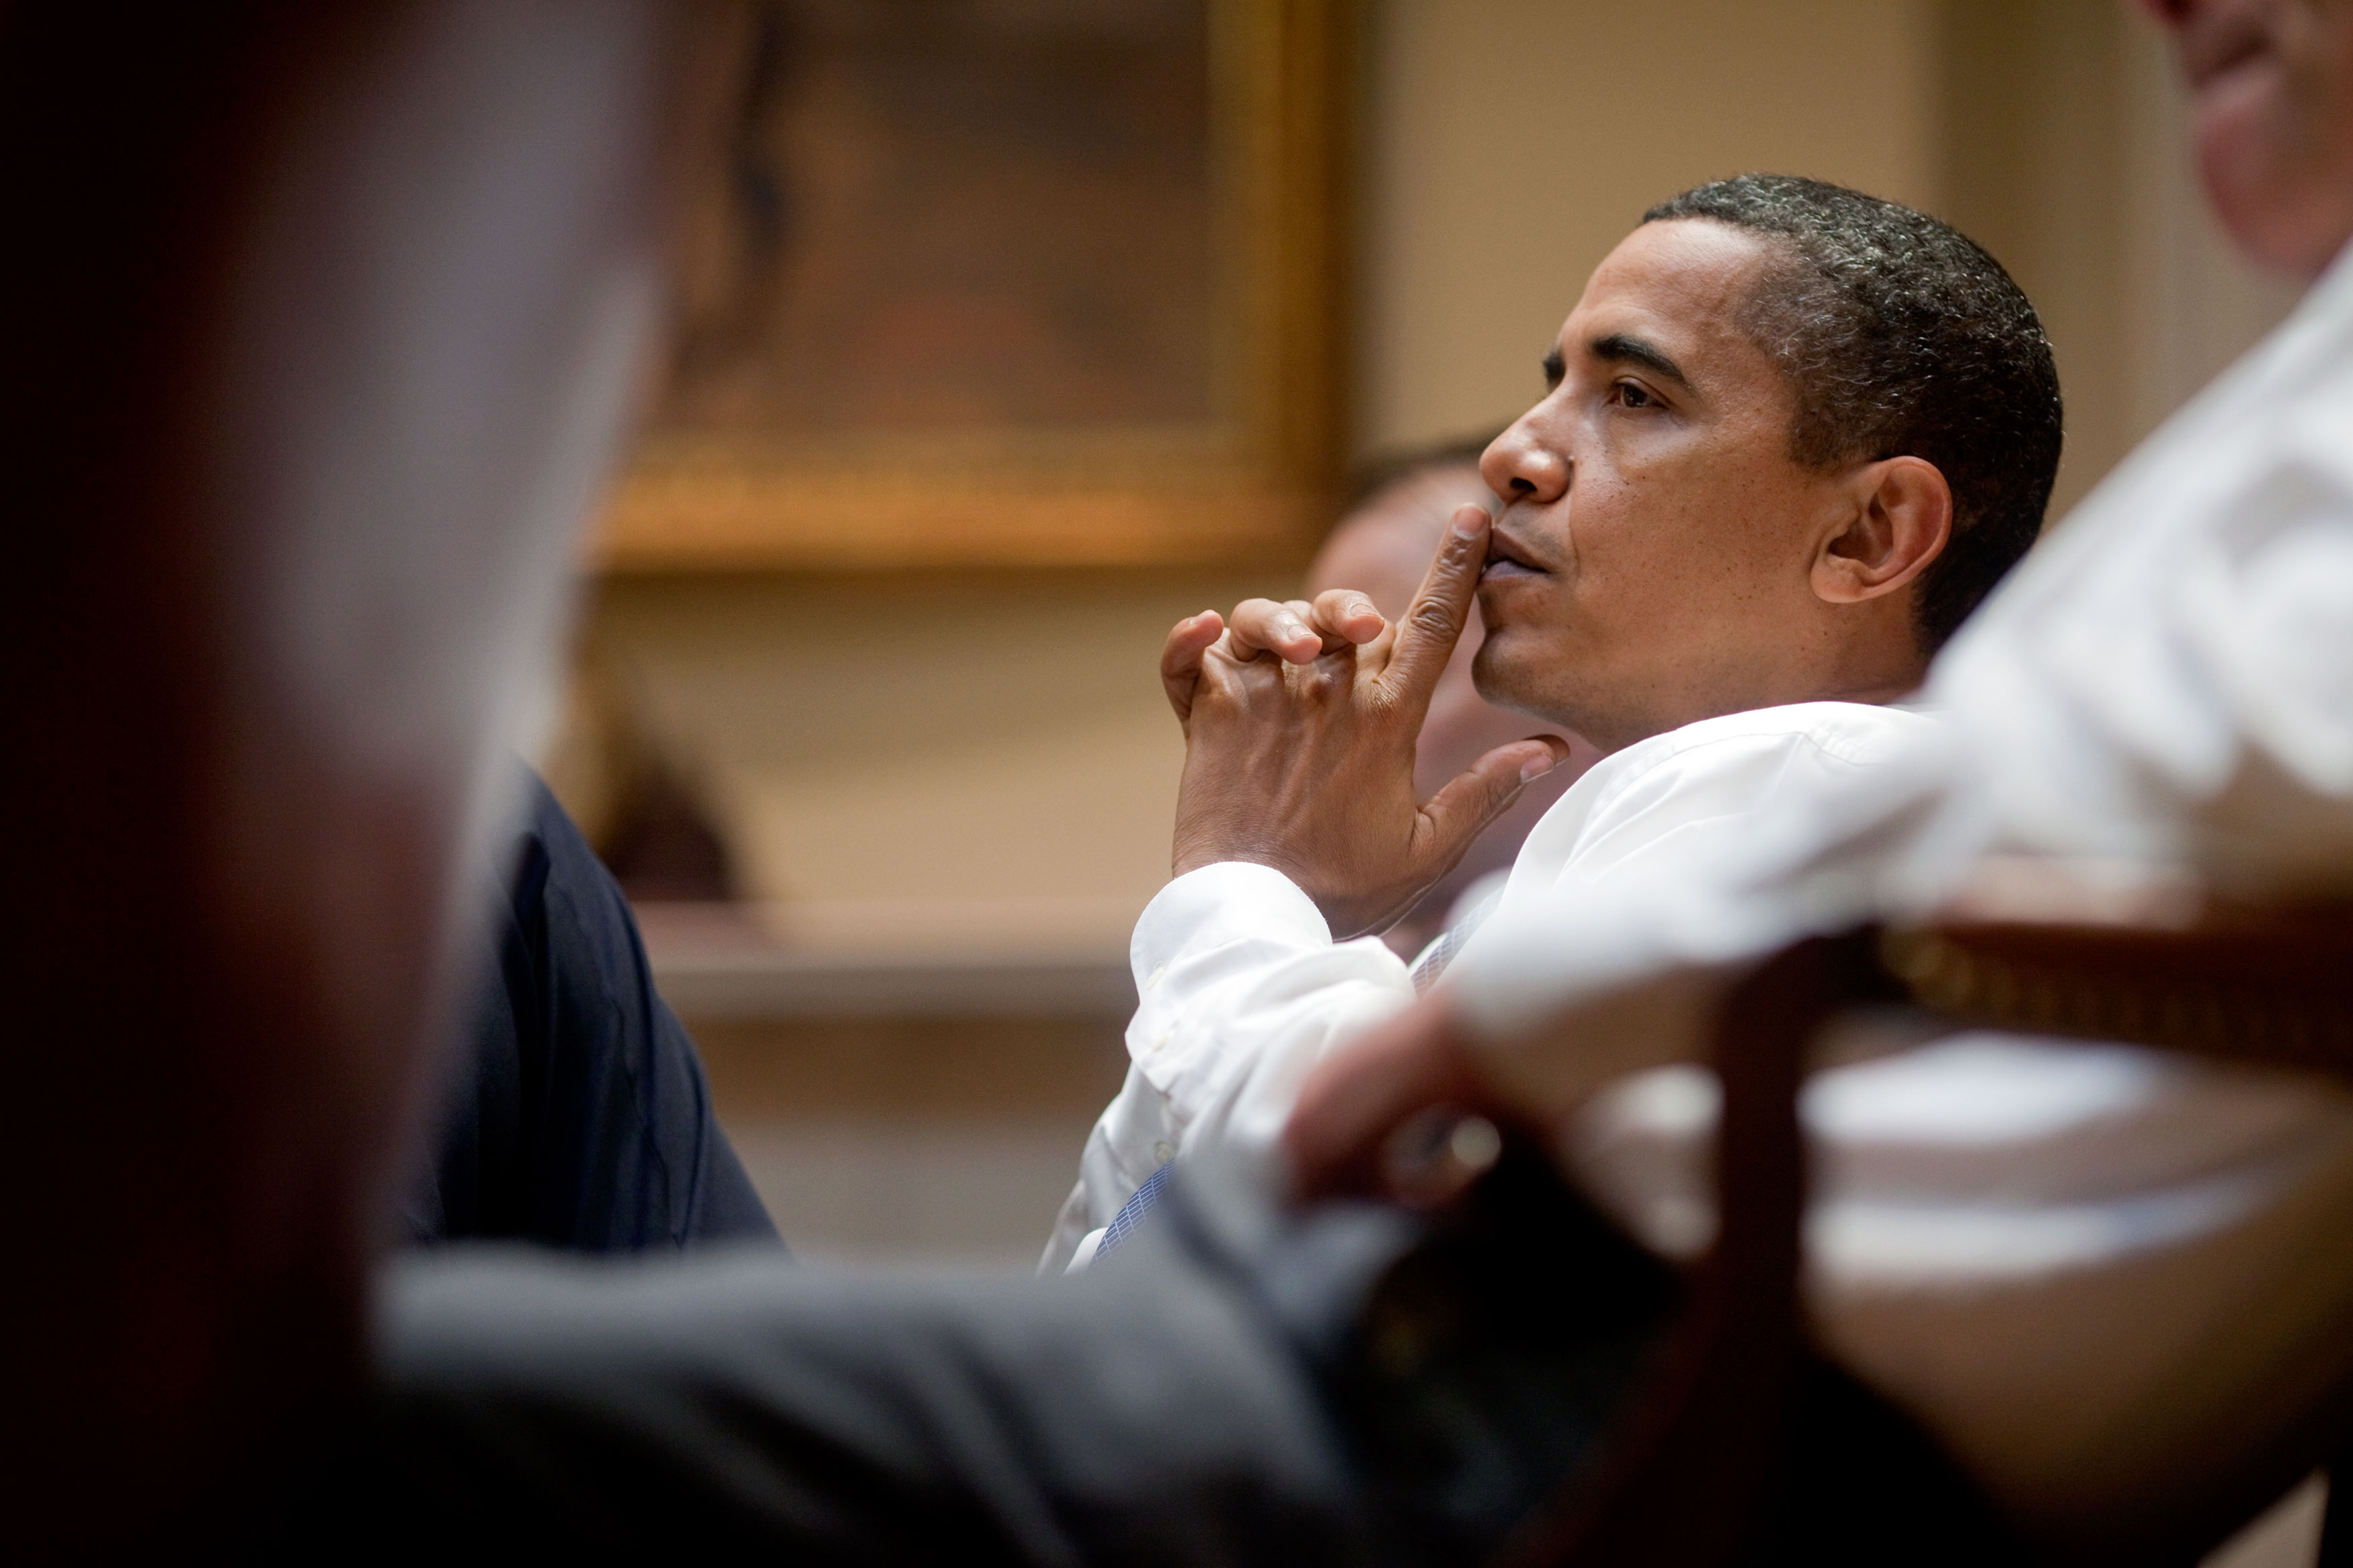 health care and president barack obama Barack obama's healthcare bill passed by congress us president says 'this is what change looks like' about reform that ensures coverage for 95% of americans ewen macaskill in washington.